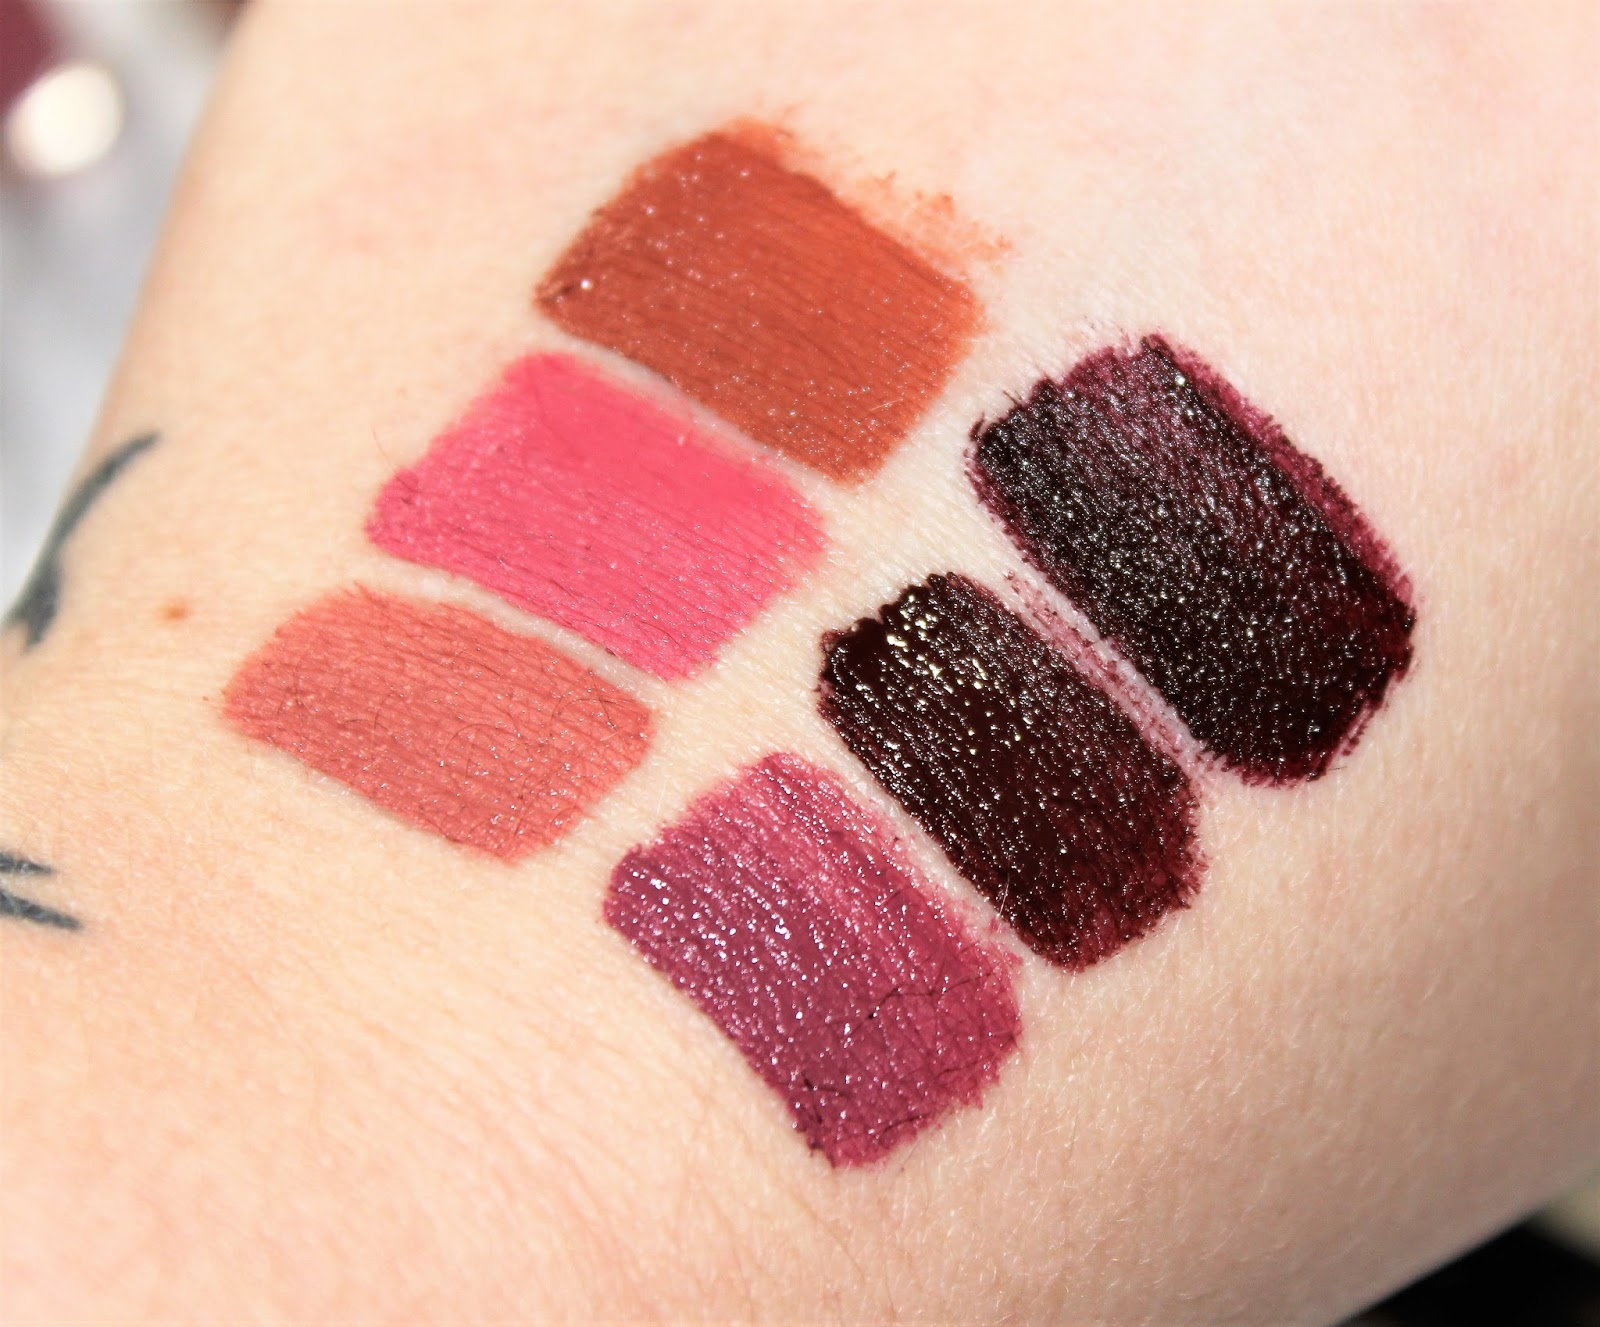 Pur Liquid Lipstick Swatches